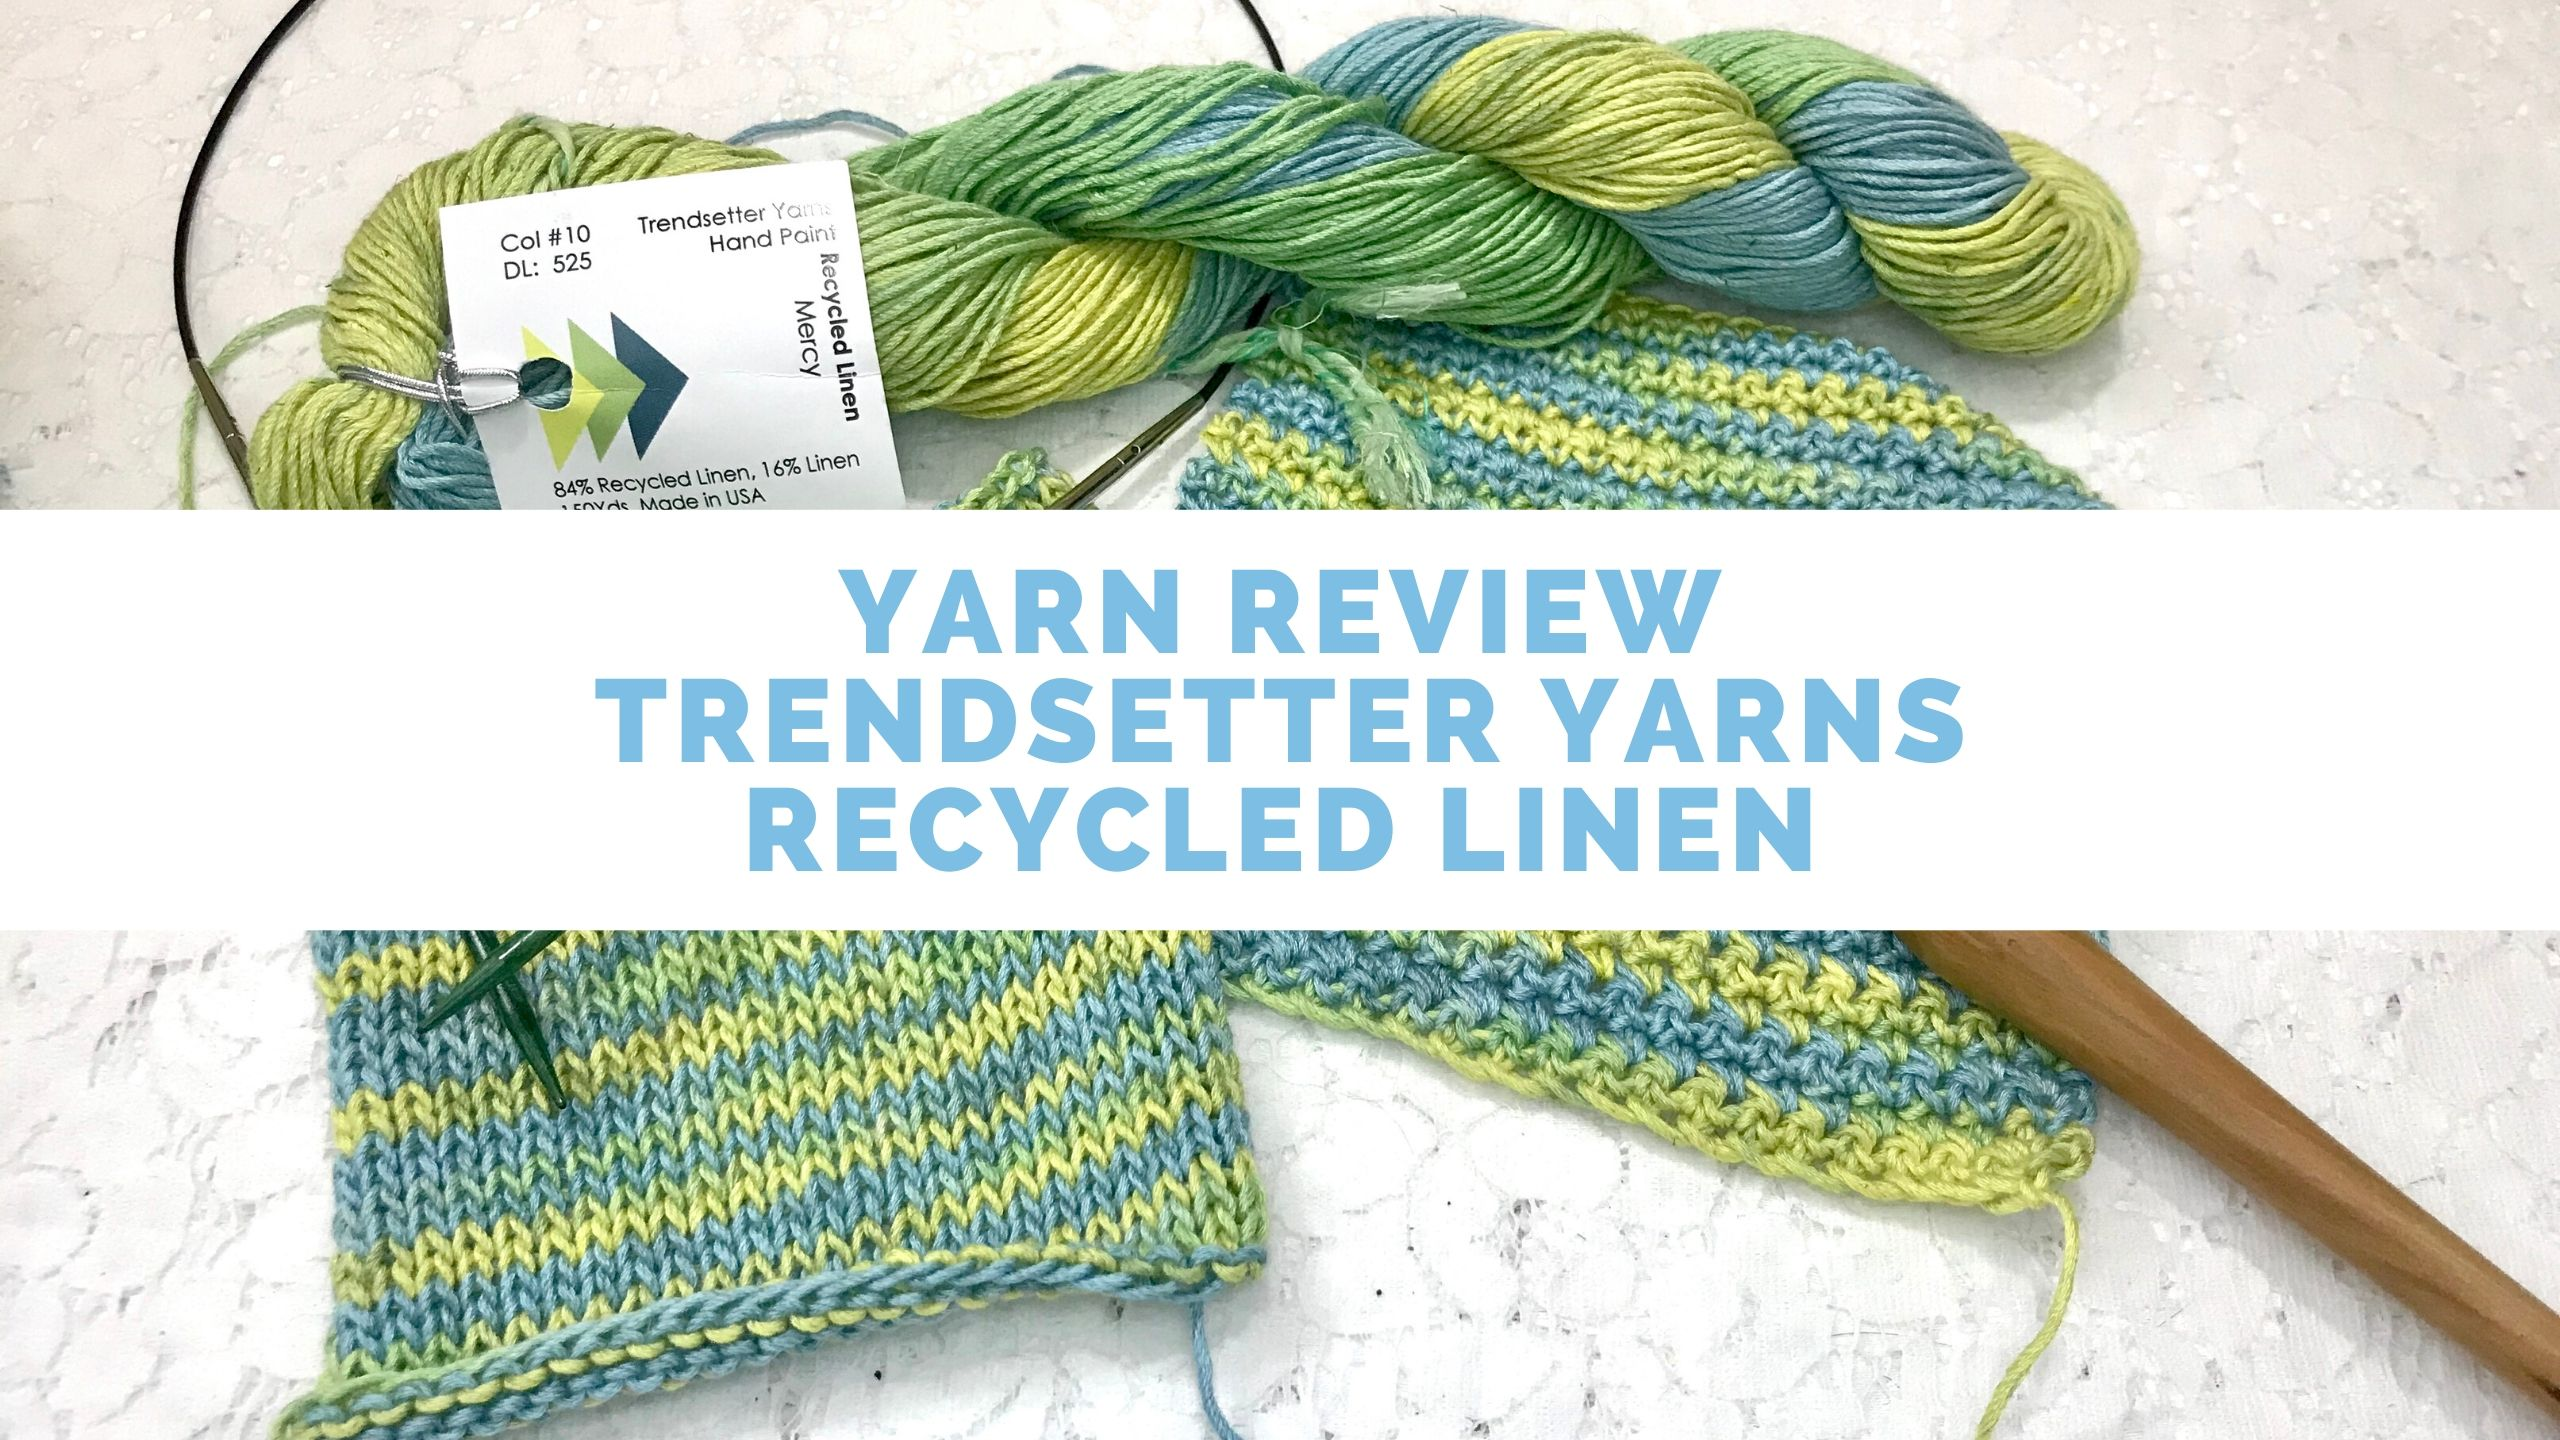 Review of Trendsetter Yarns Recycled Linen. Review from Banana Moon Studio